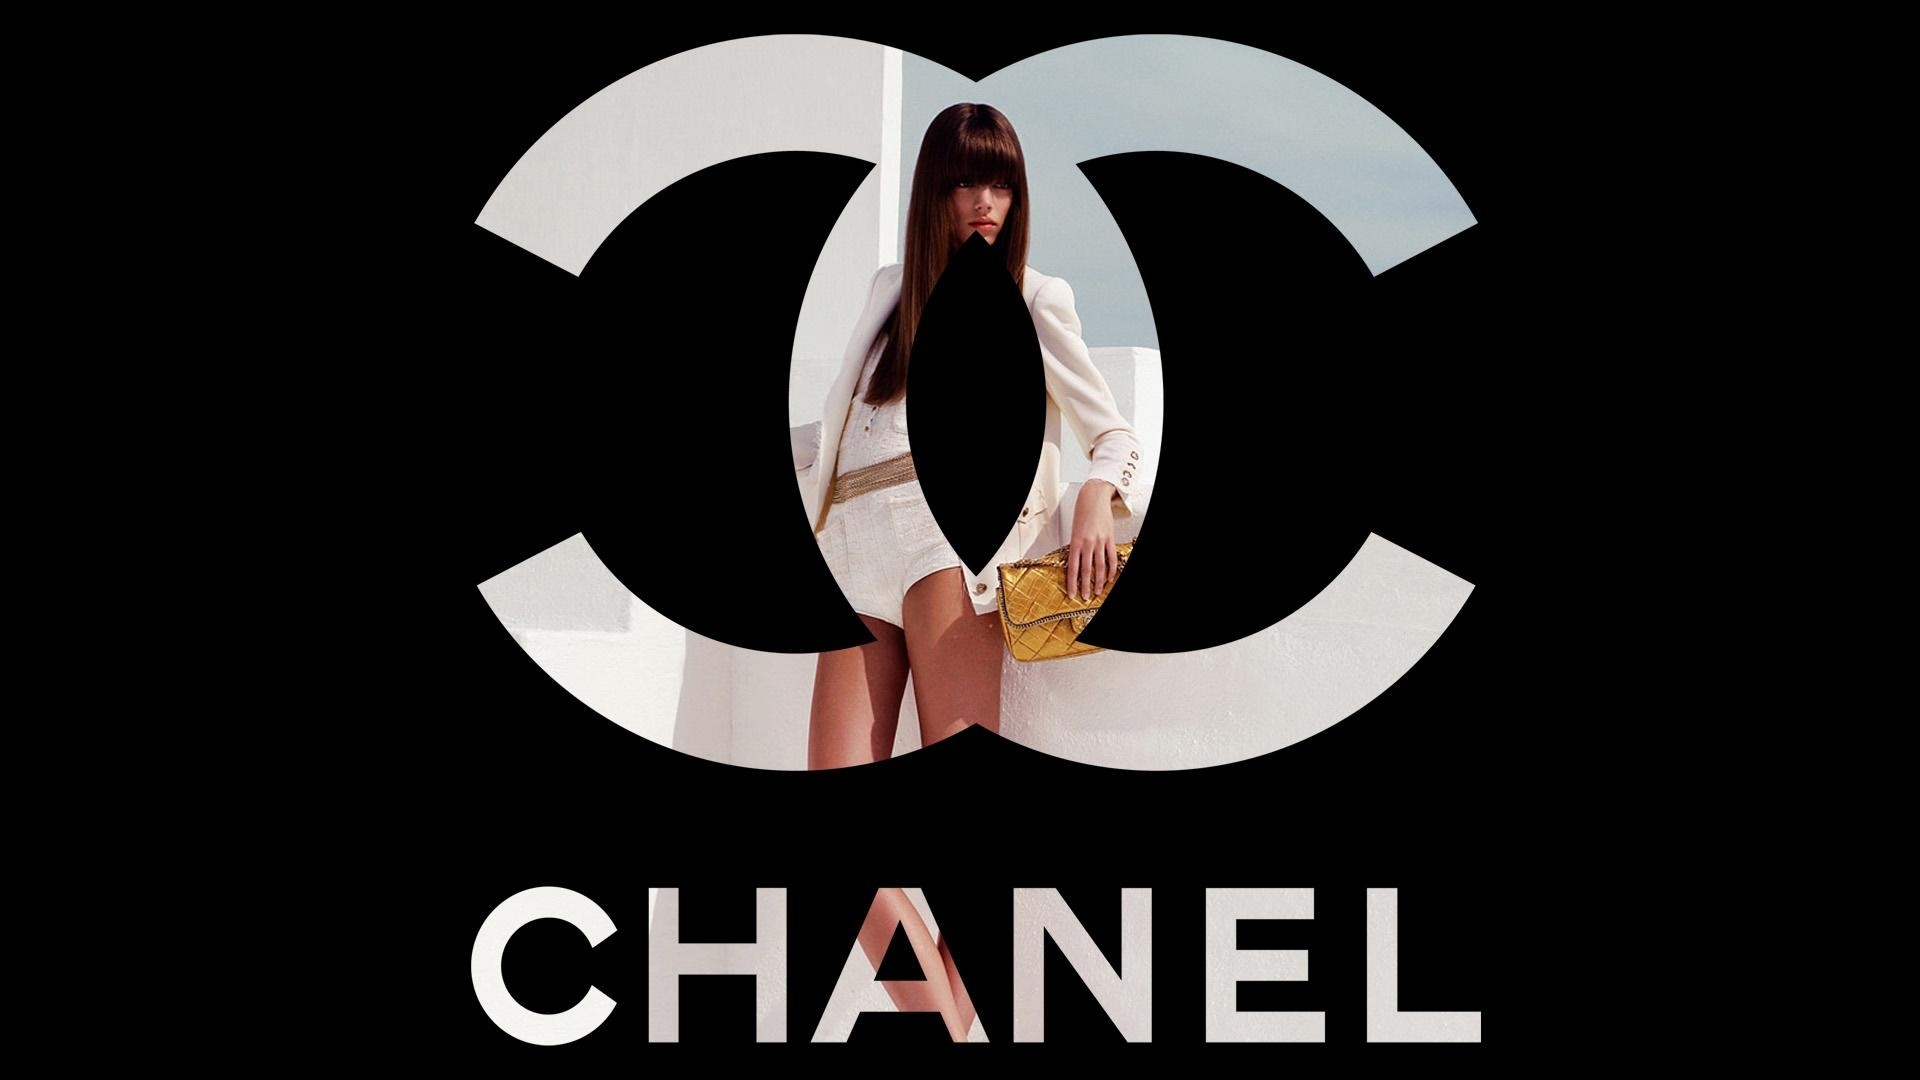 1920x1080 Chanel-Wallpaper-High-Definition-Wallpapers-HD